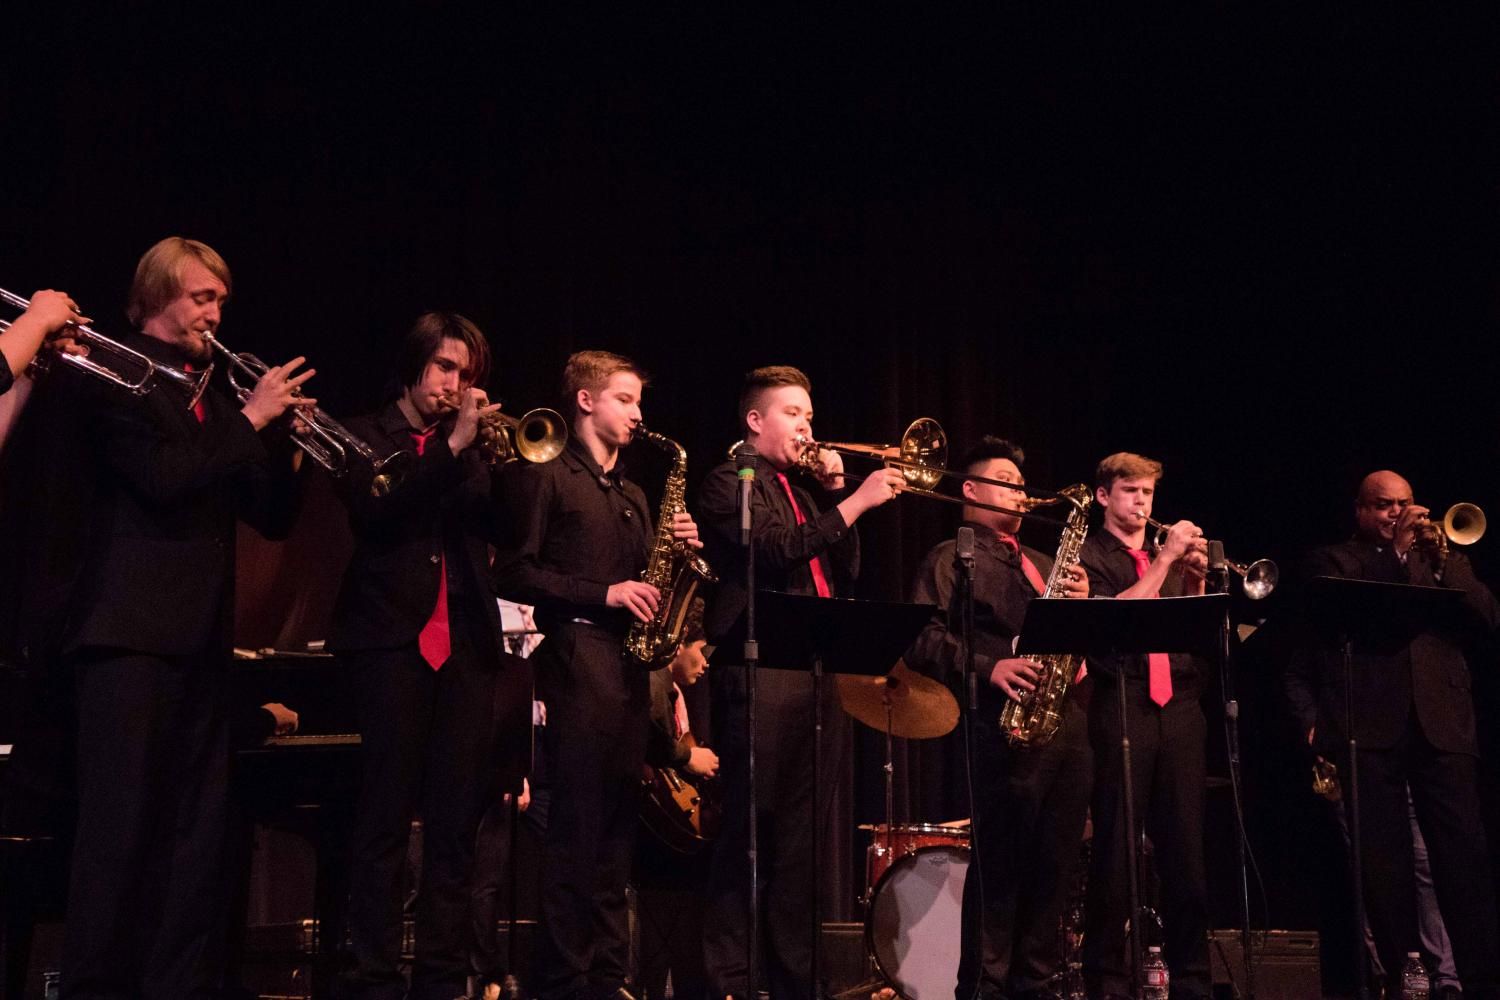 From left to right: Nathan Reeber, Solomon Plourd, Owen Moreland, Ethan Pyke, Andrew Sumabat, Finn Ohea, and Terell Stafford.